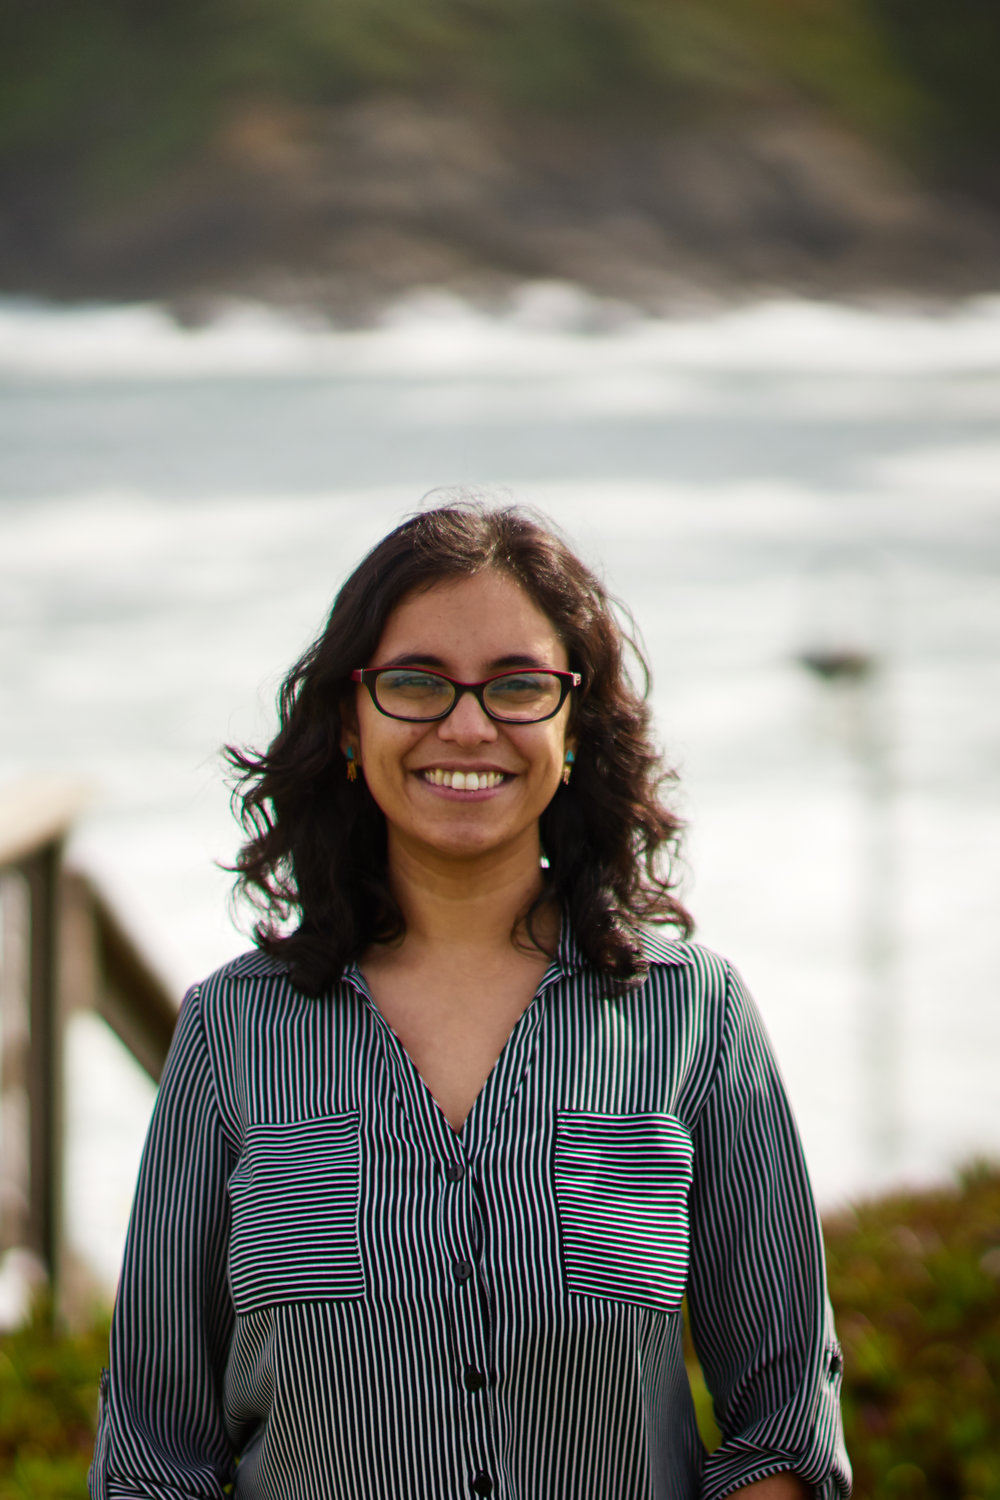 PRIYASHUKLA  -  I am a climate scientist studying ongoing changes to our coastal oceans. I have focused primarily on how changes in the physical environment - temperature, carbon dioxide, nutrients, oxygen - impact habitat-forming species such as kelp forests, rhodoliths, mussels, and seagrass.I am a relentless advocate for diversity and inclusion. I work within academia and at its boundaries to increase the visibility of marginalized communities inside and outside of science. I am an ardent communicator of the challenges our society must overcome to combat climate change and social injustice. I engage locally to innovate solutions for problems presented by climate change within multiple facets our community. E-mail: pshukla@ucdavis.edu